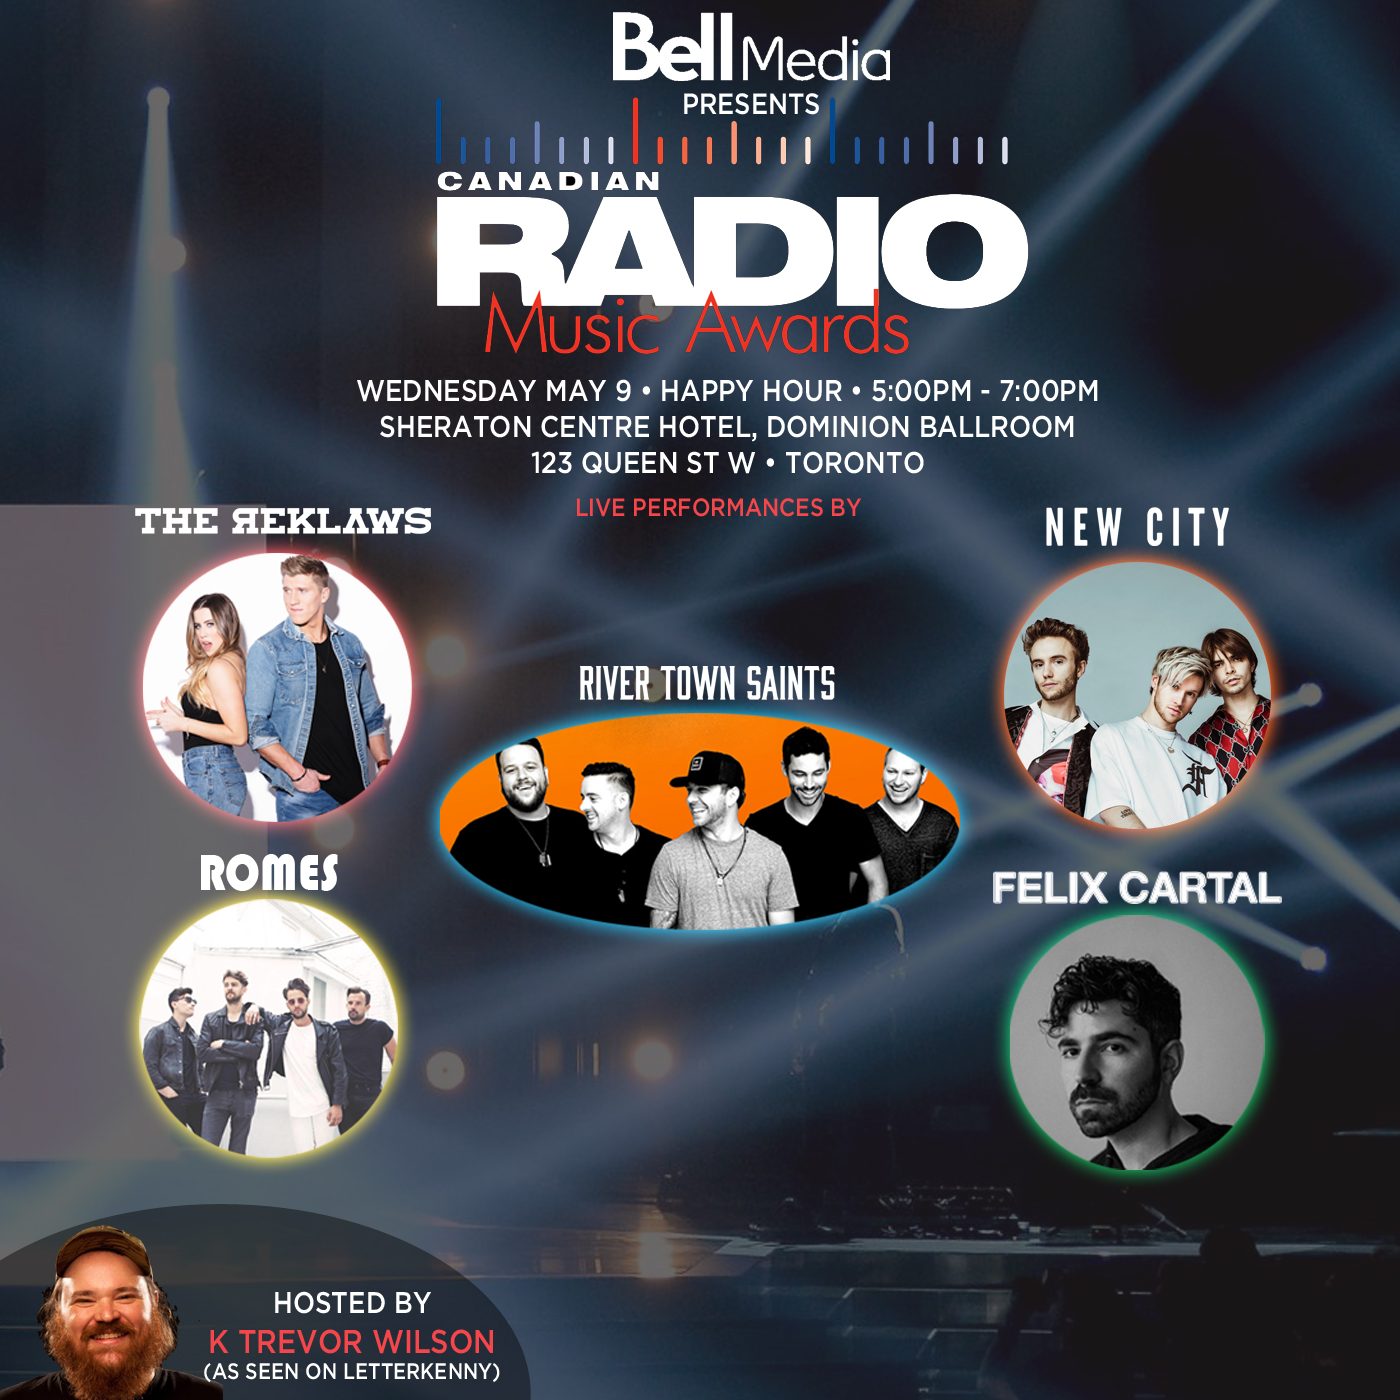 Canadian Radio Music Awards Performers Announced